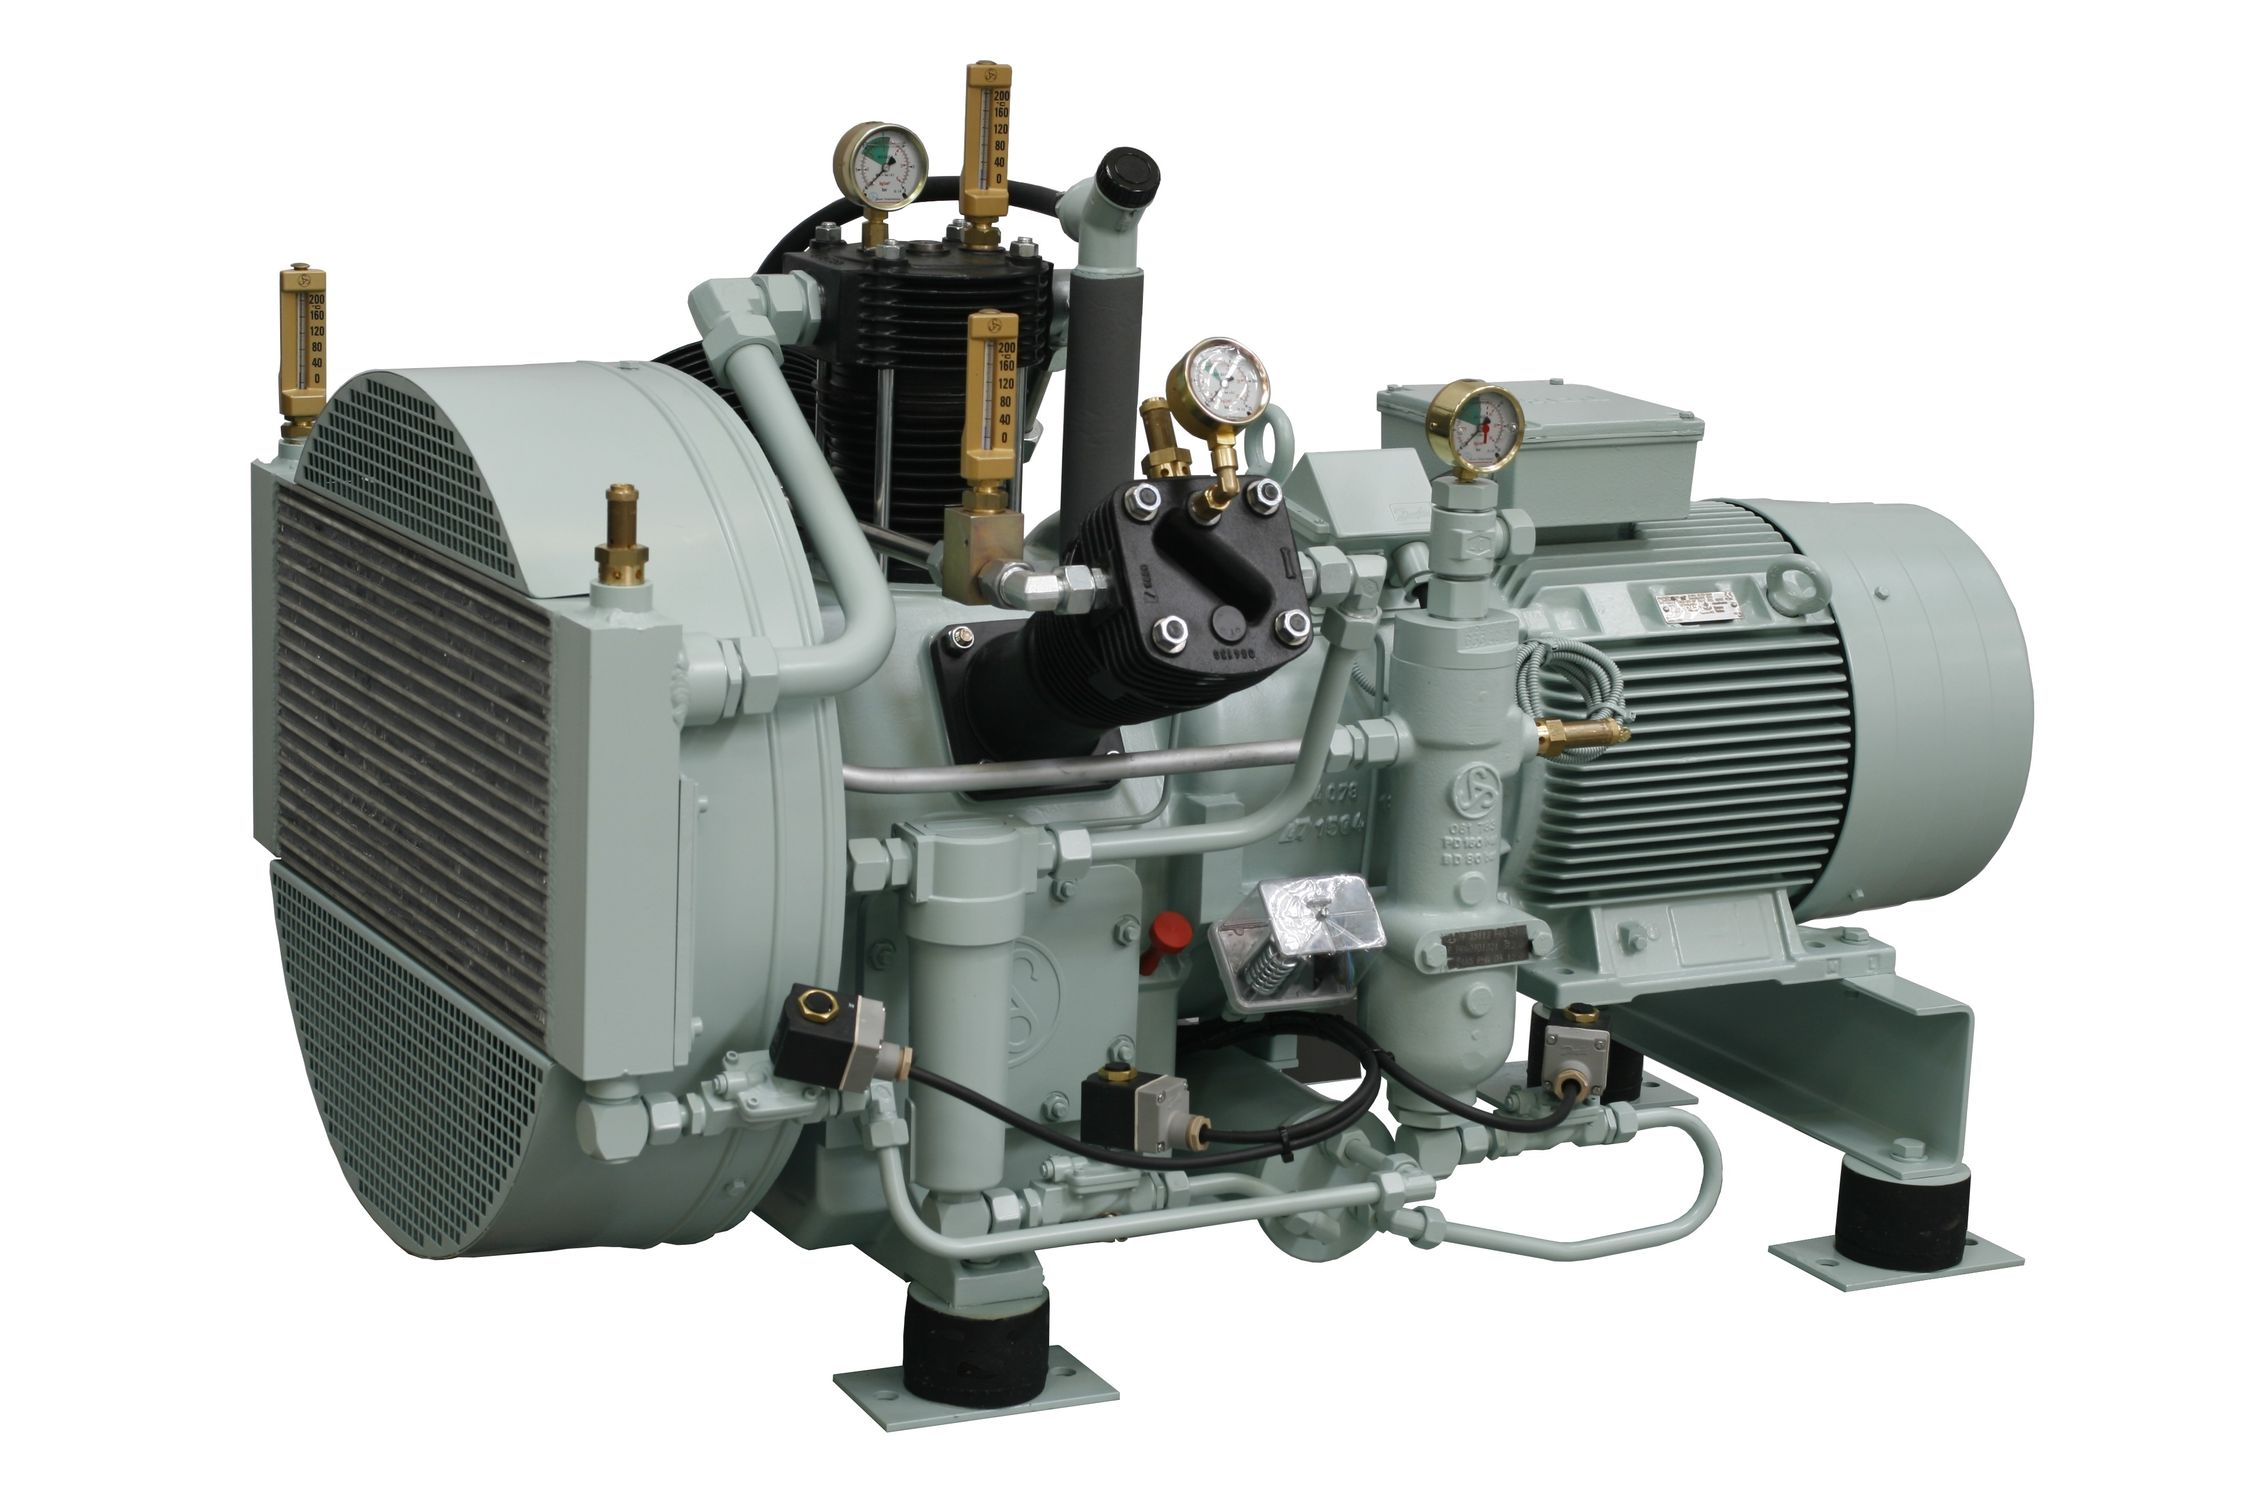 High Pressure Gas Compressor : Sauer compressors trask decrow machinery